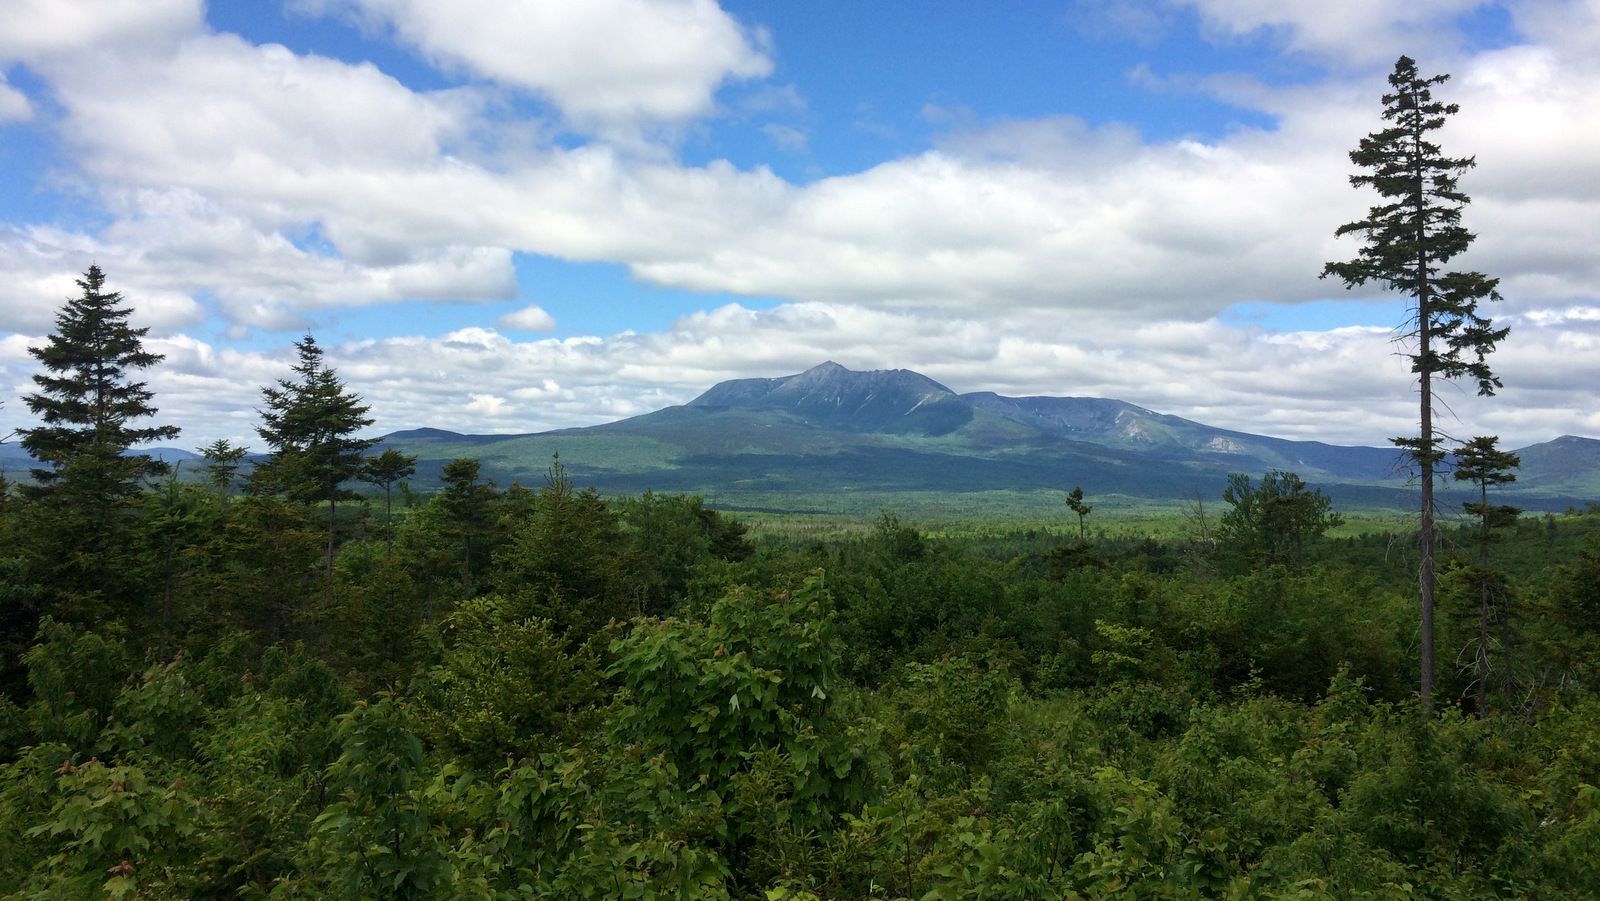 Mount Katahdin, the highest peak in Maine, is visible from some locations within the Katahdin Woods and Waters National Monument. The Katahdin monument is one of the 27 under threat by Trump's executive order. (AP/Patrick Whittle)